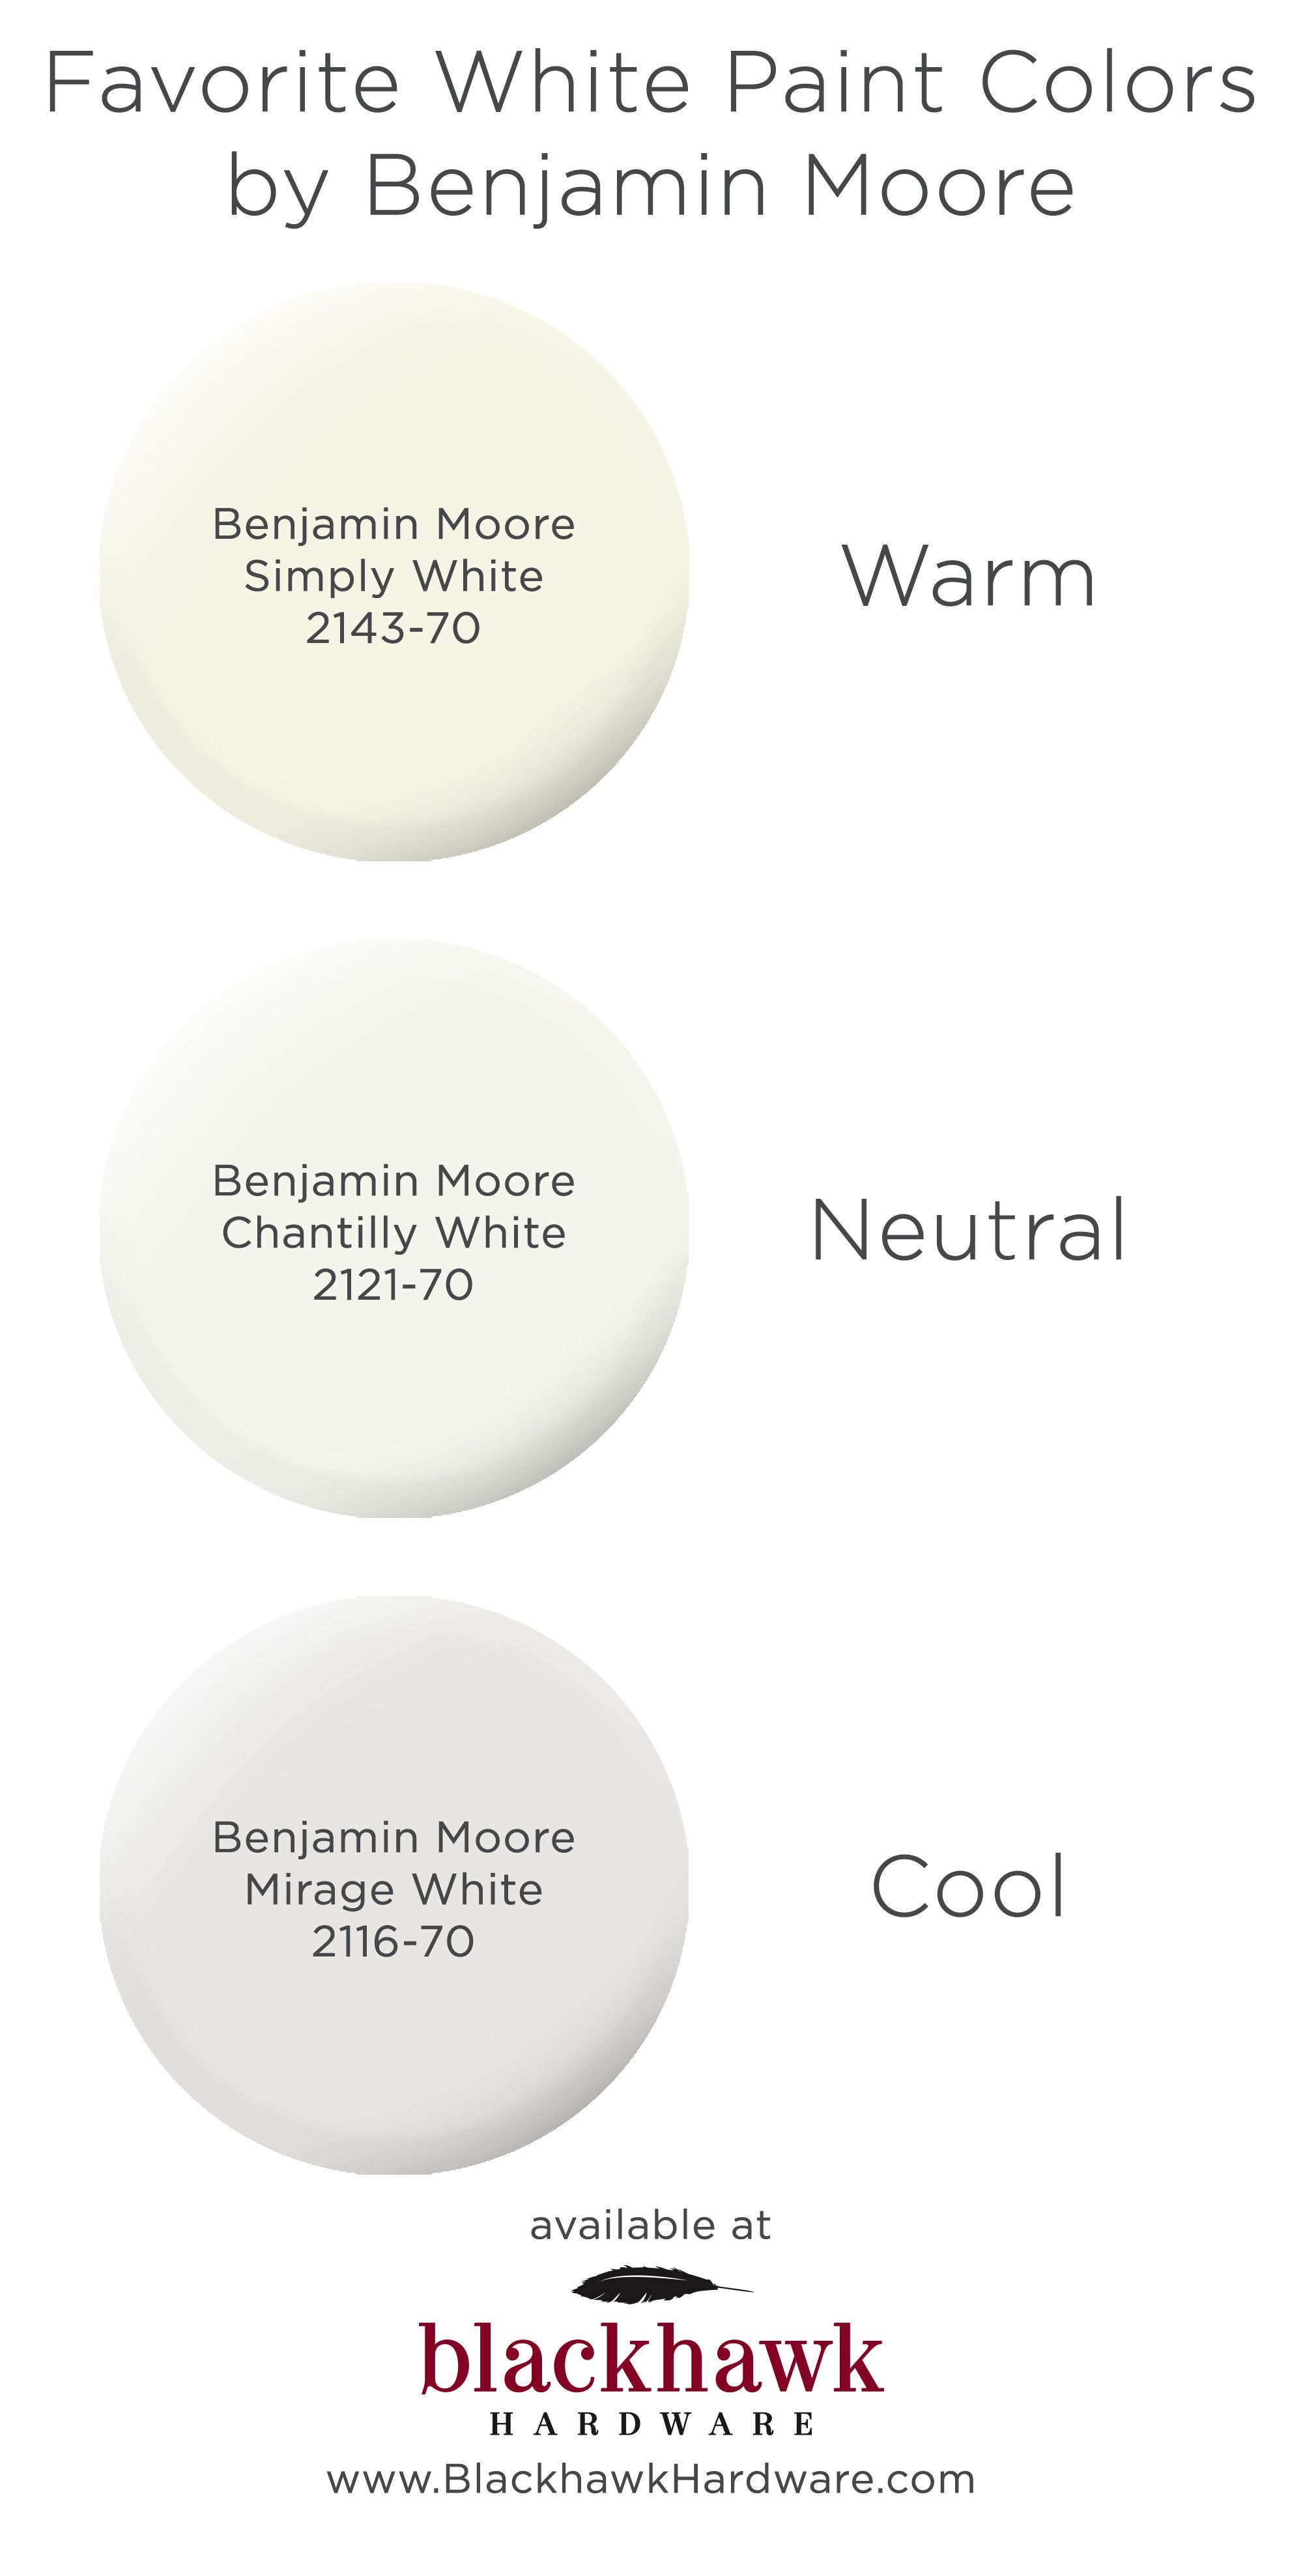 Three Best White Paint Colors by Benjamin Moore images